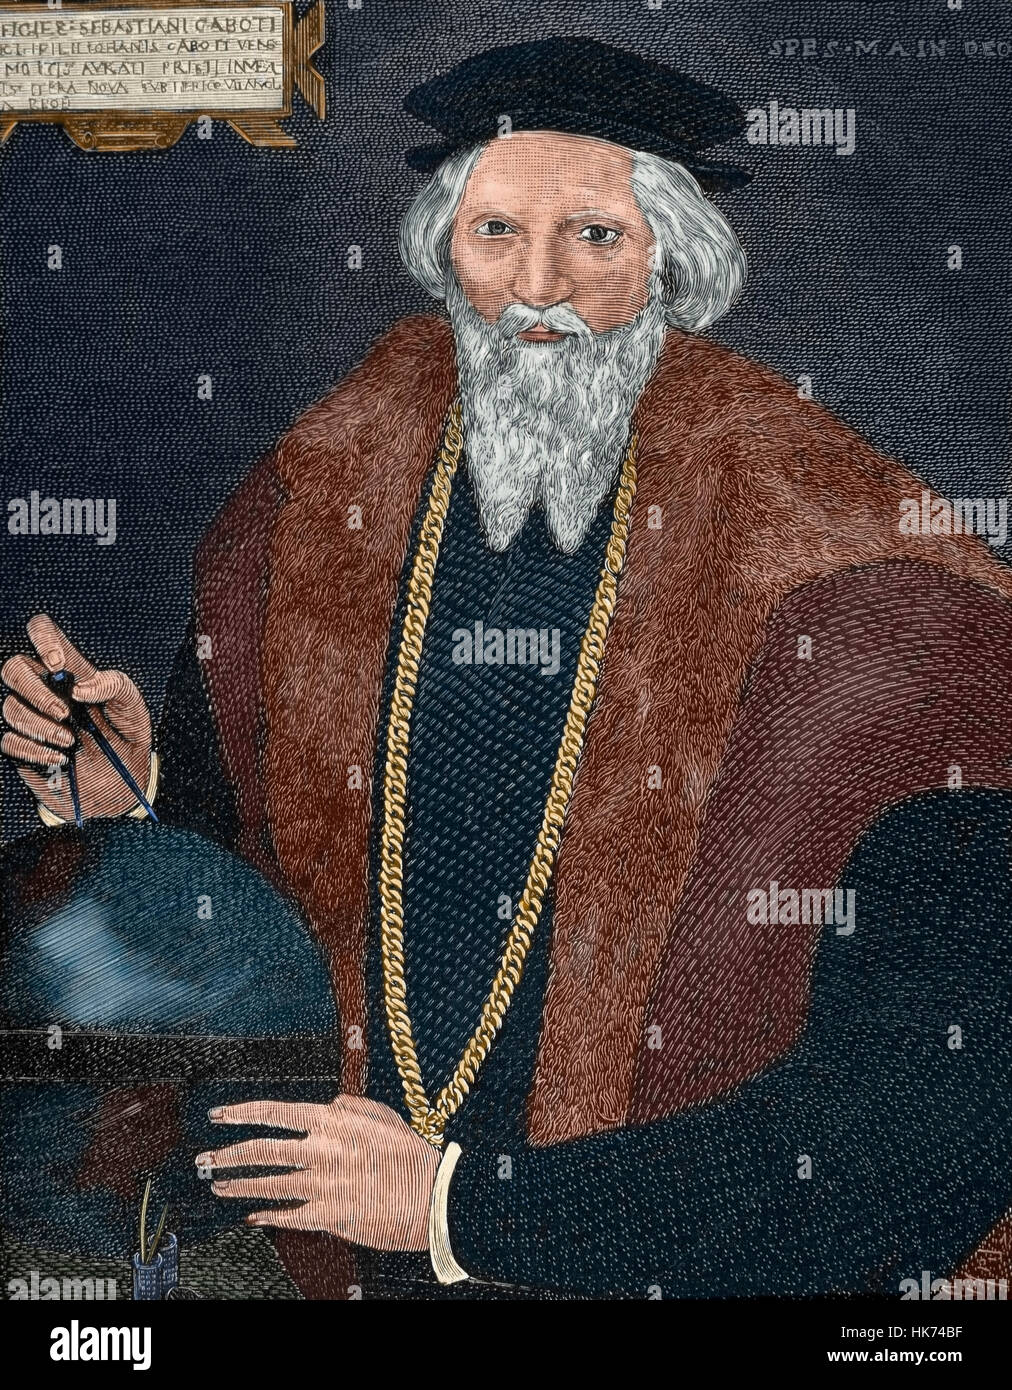 john cabot coloring pages - photo#34